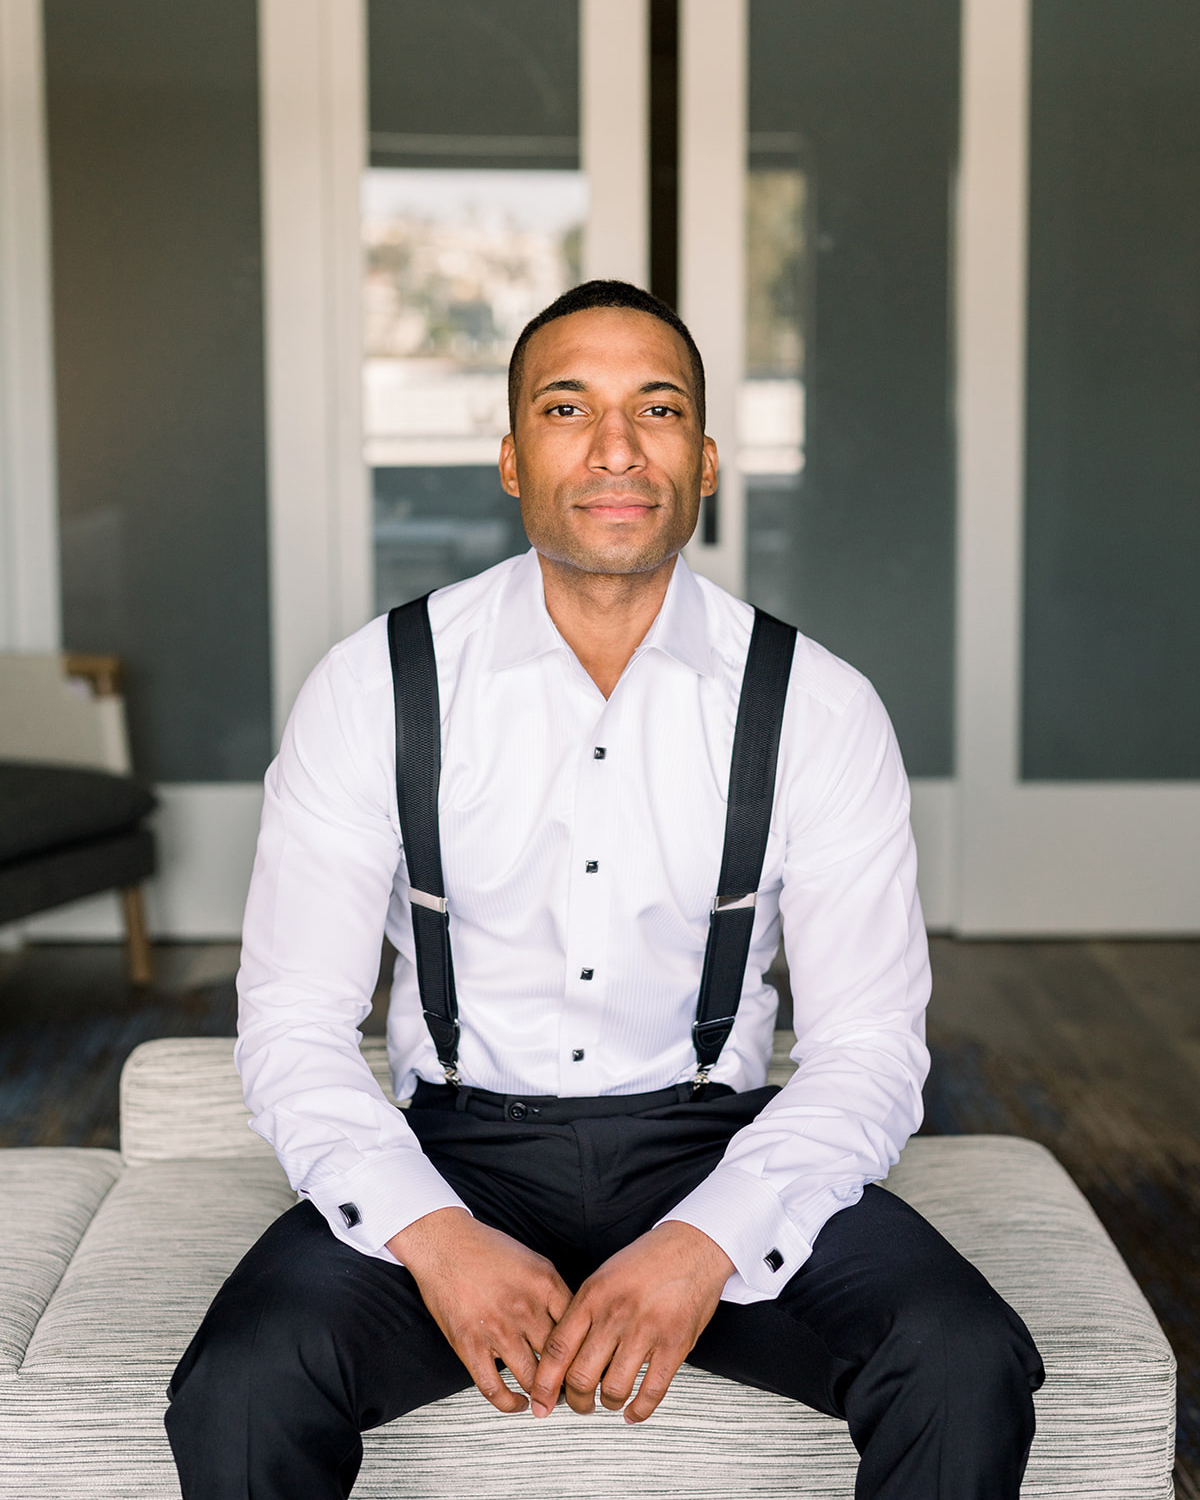 groom sitting in white shirt and black suspenders